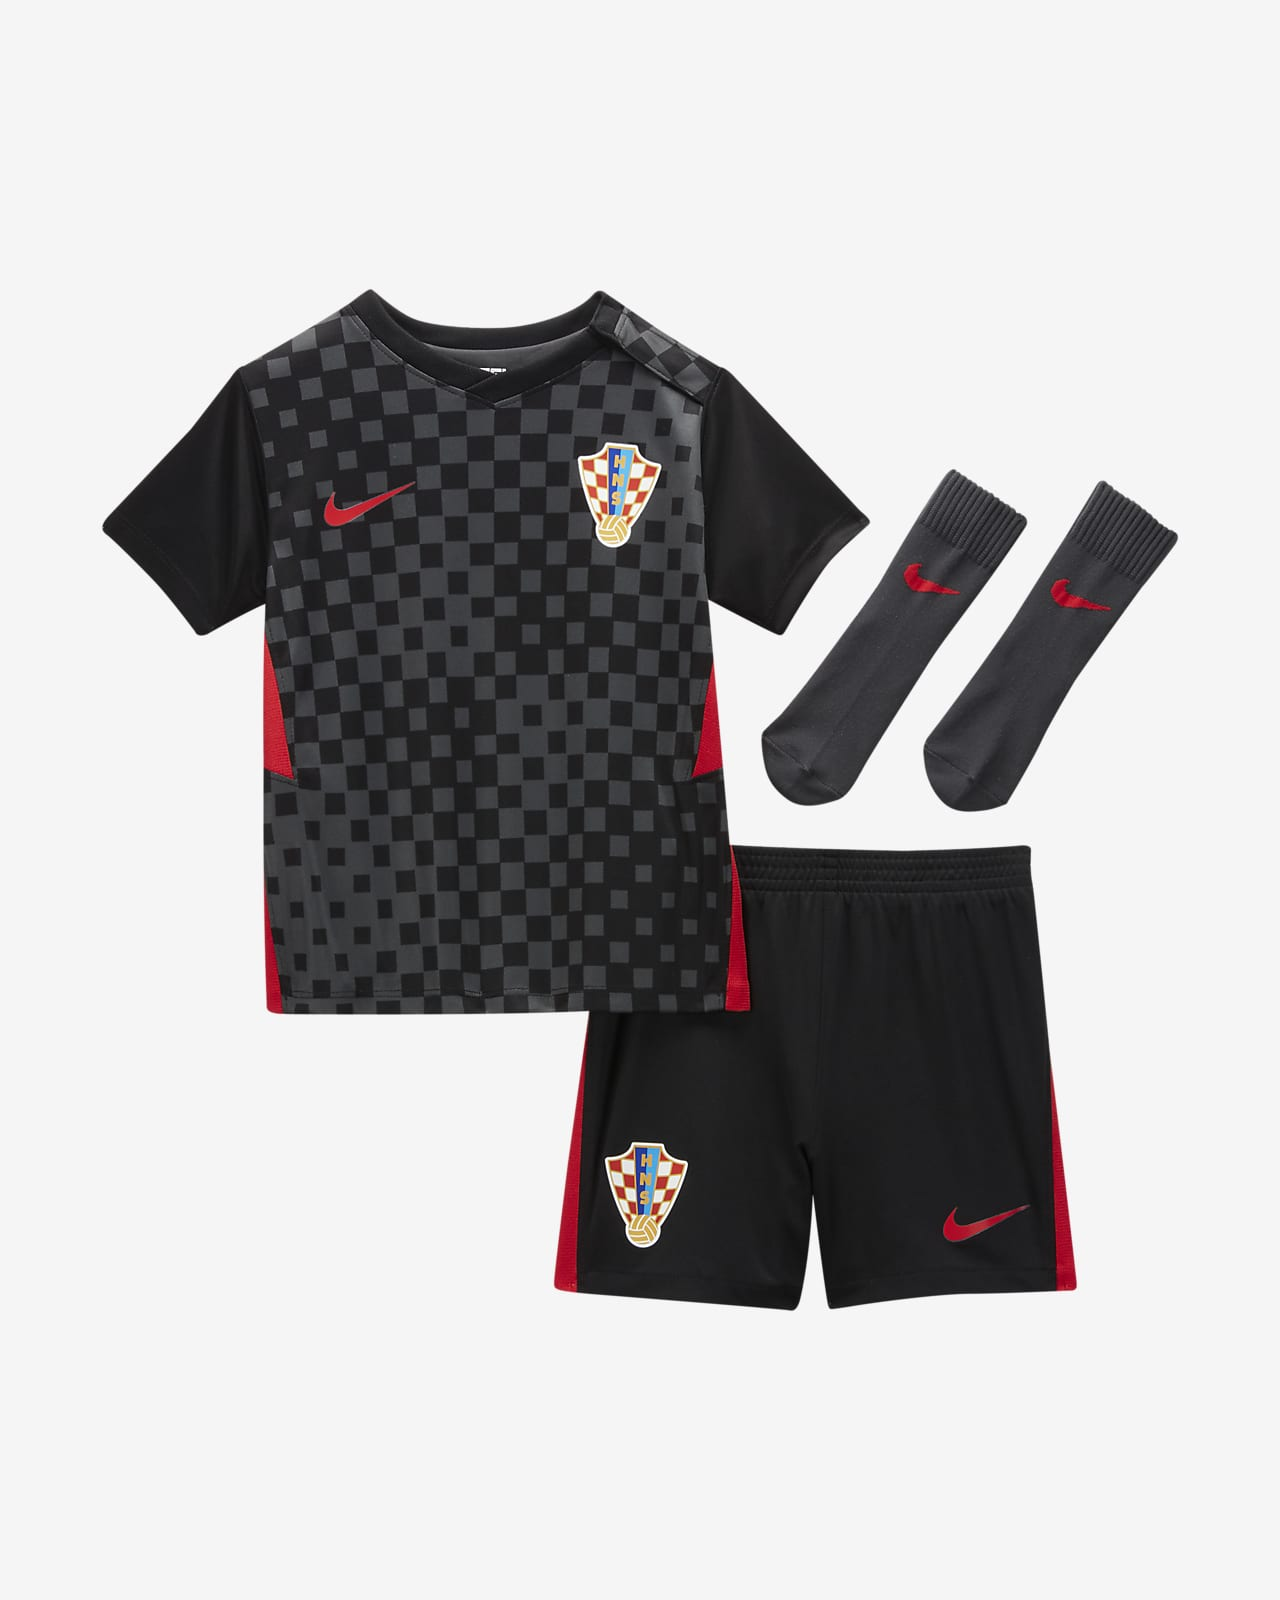 Croatia 2020 Away Baby and Toddler Football Kit